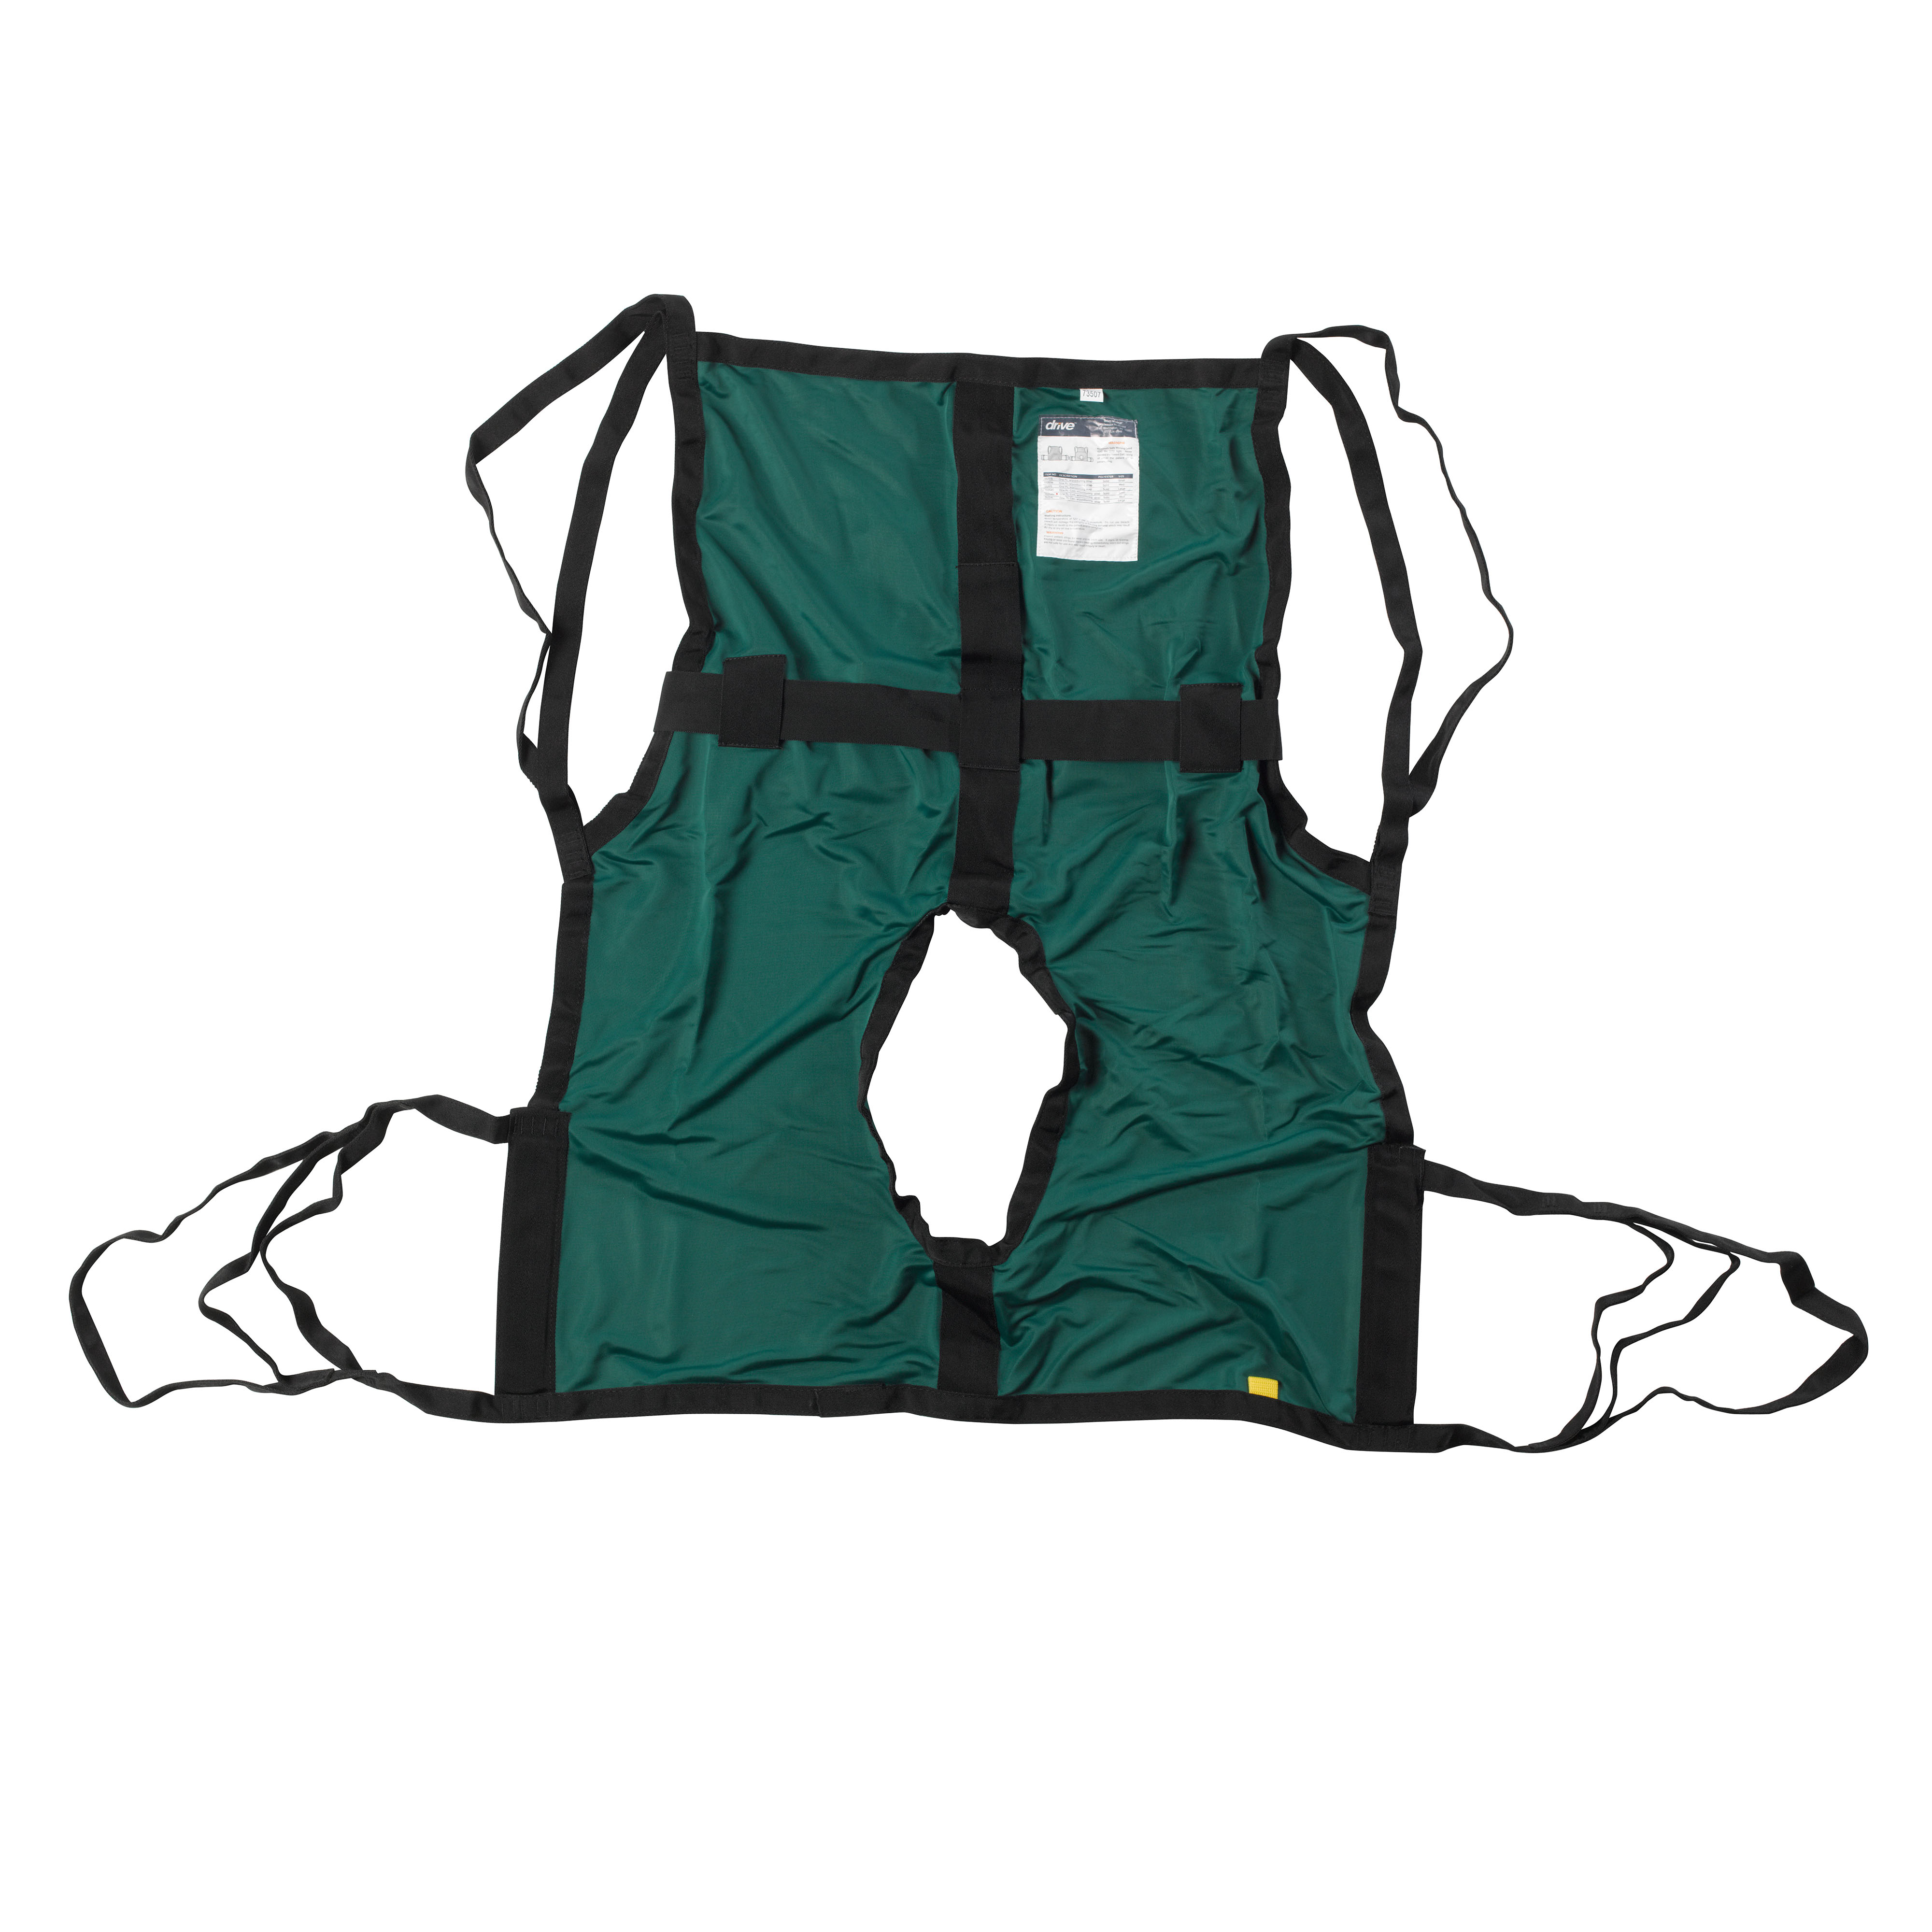 Drive Medical One Piece Sling with Positioning Strap, with Commode Cutout, Large